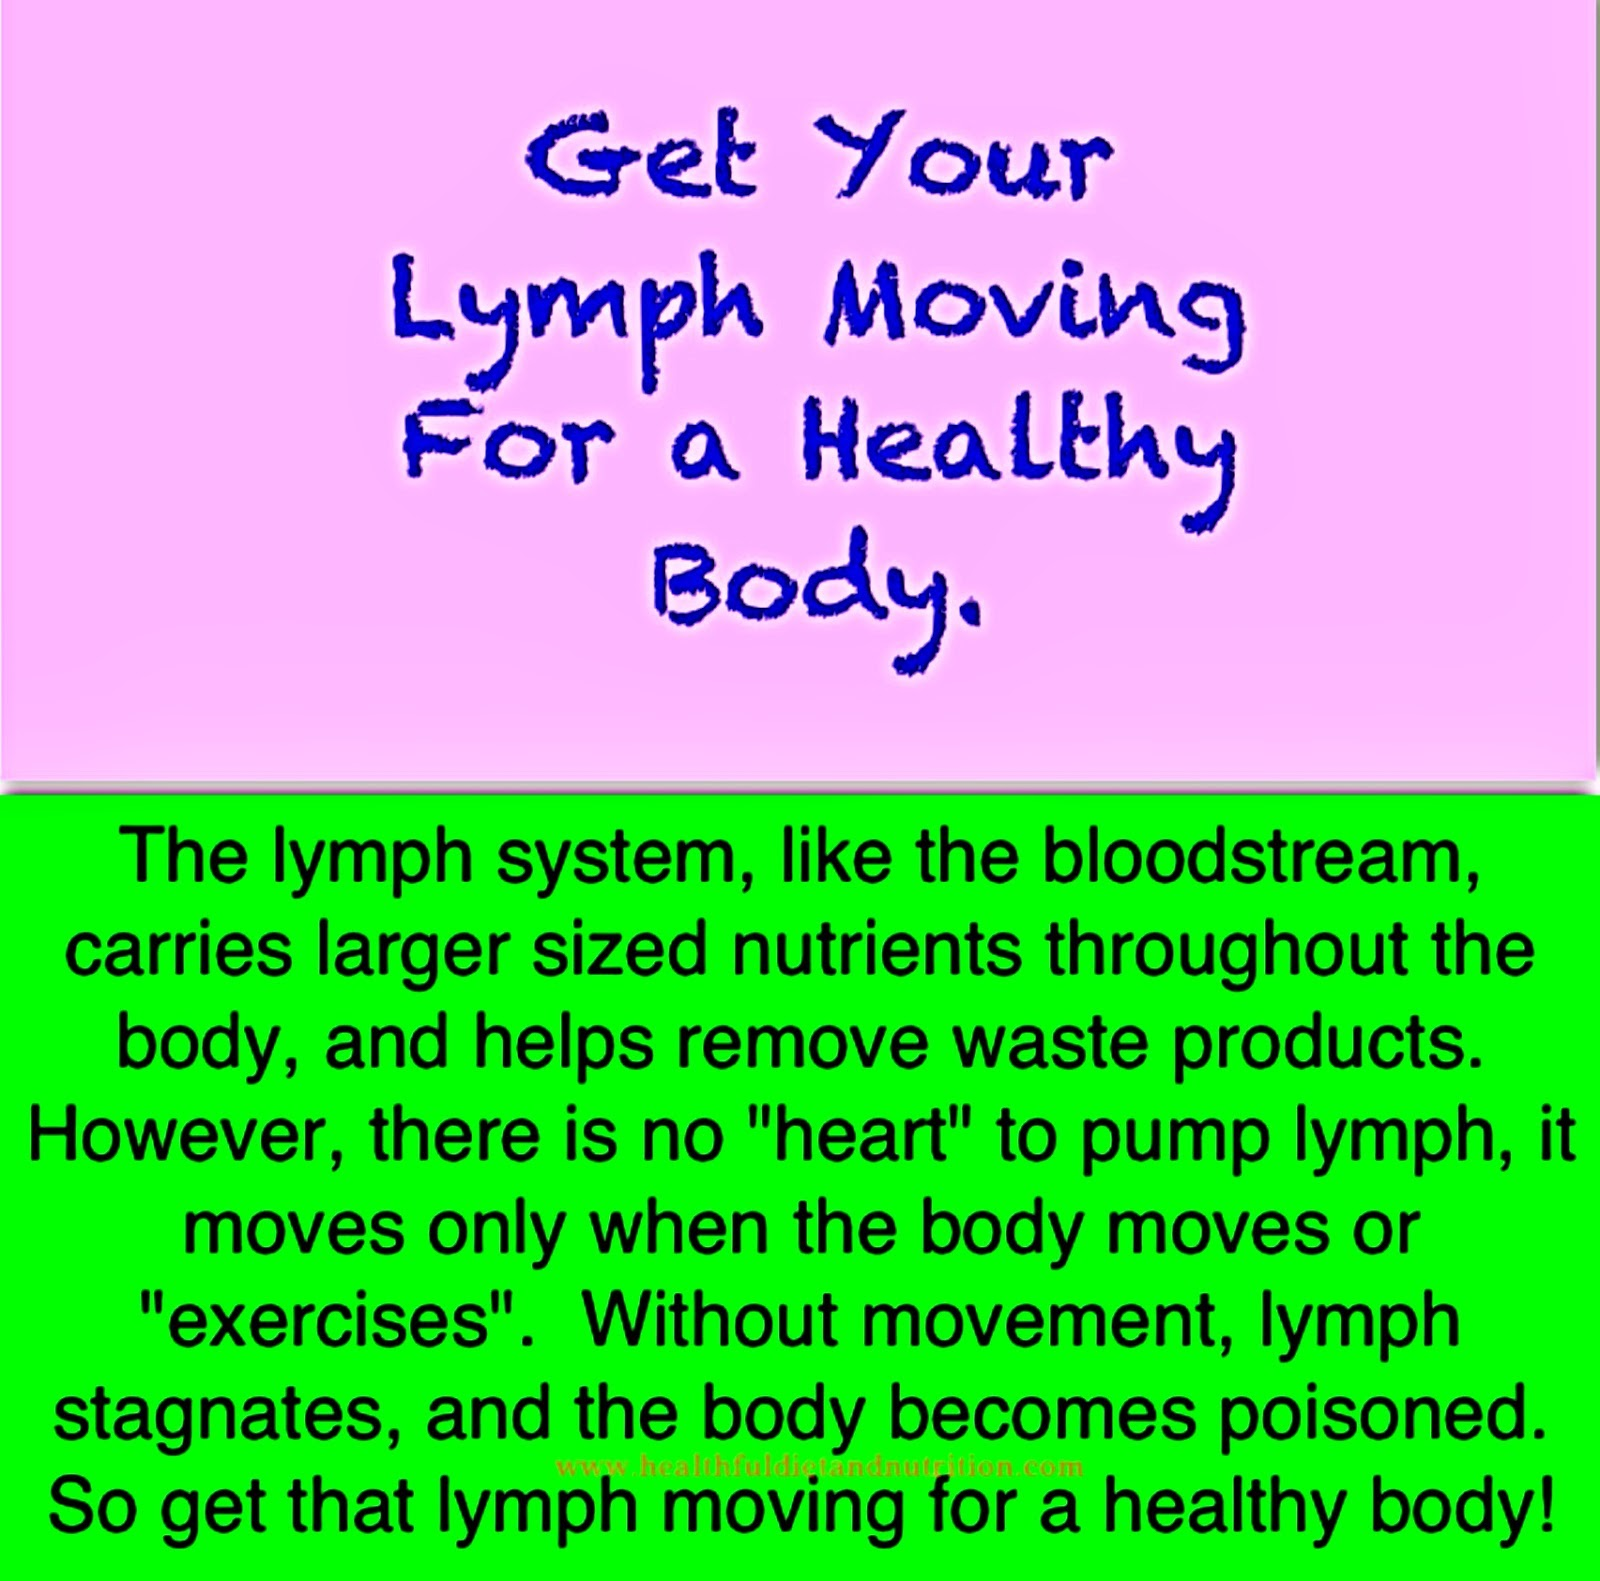 Get Your Lymph Moving For A Healthy Body